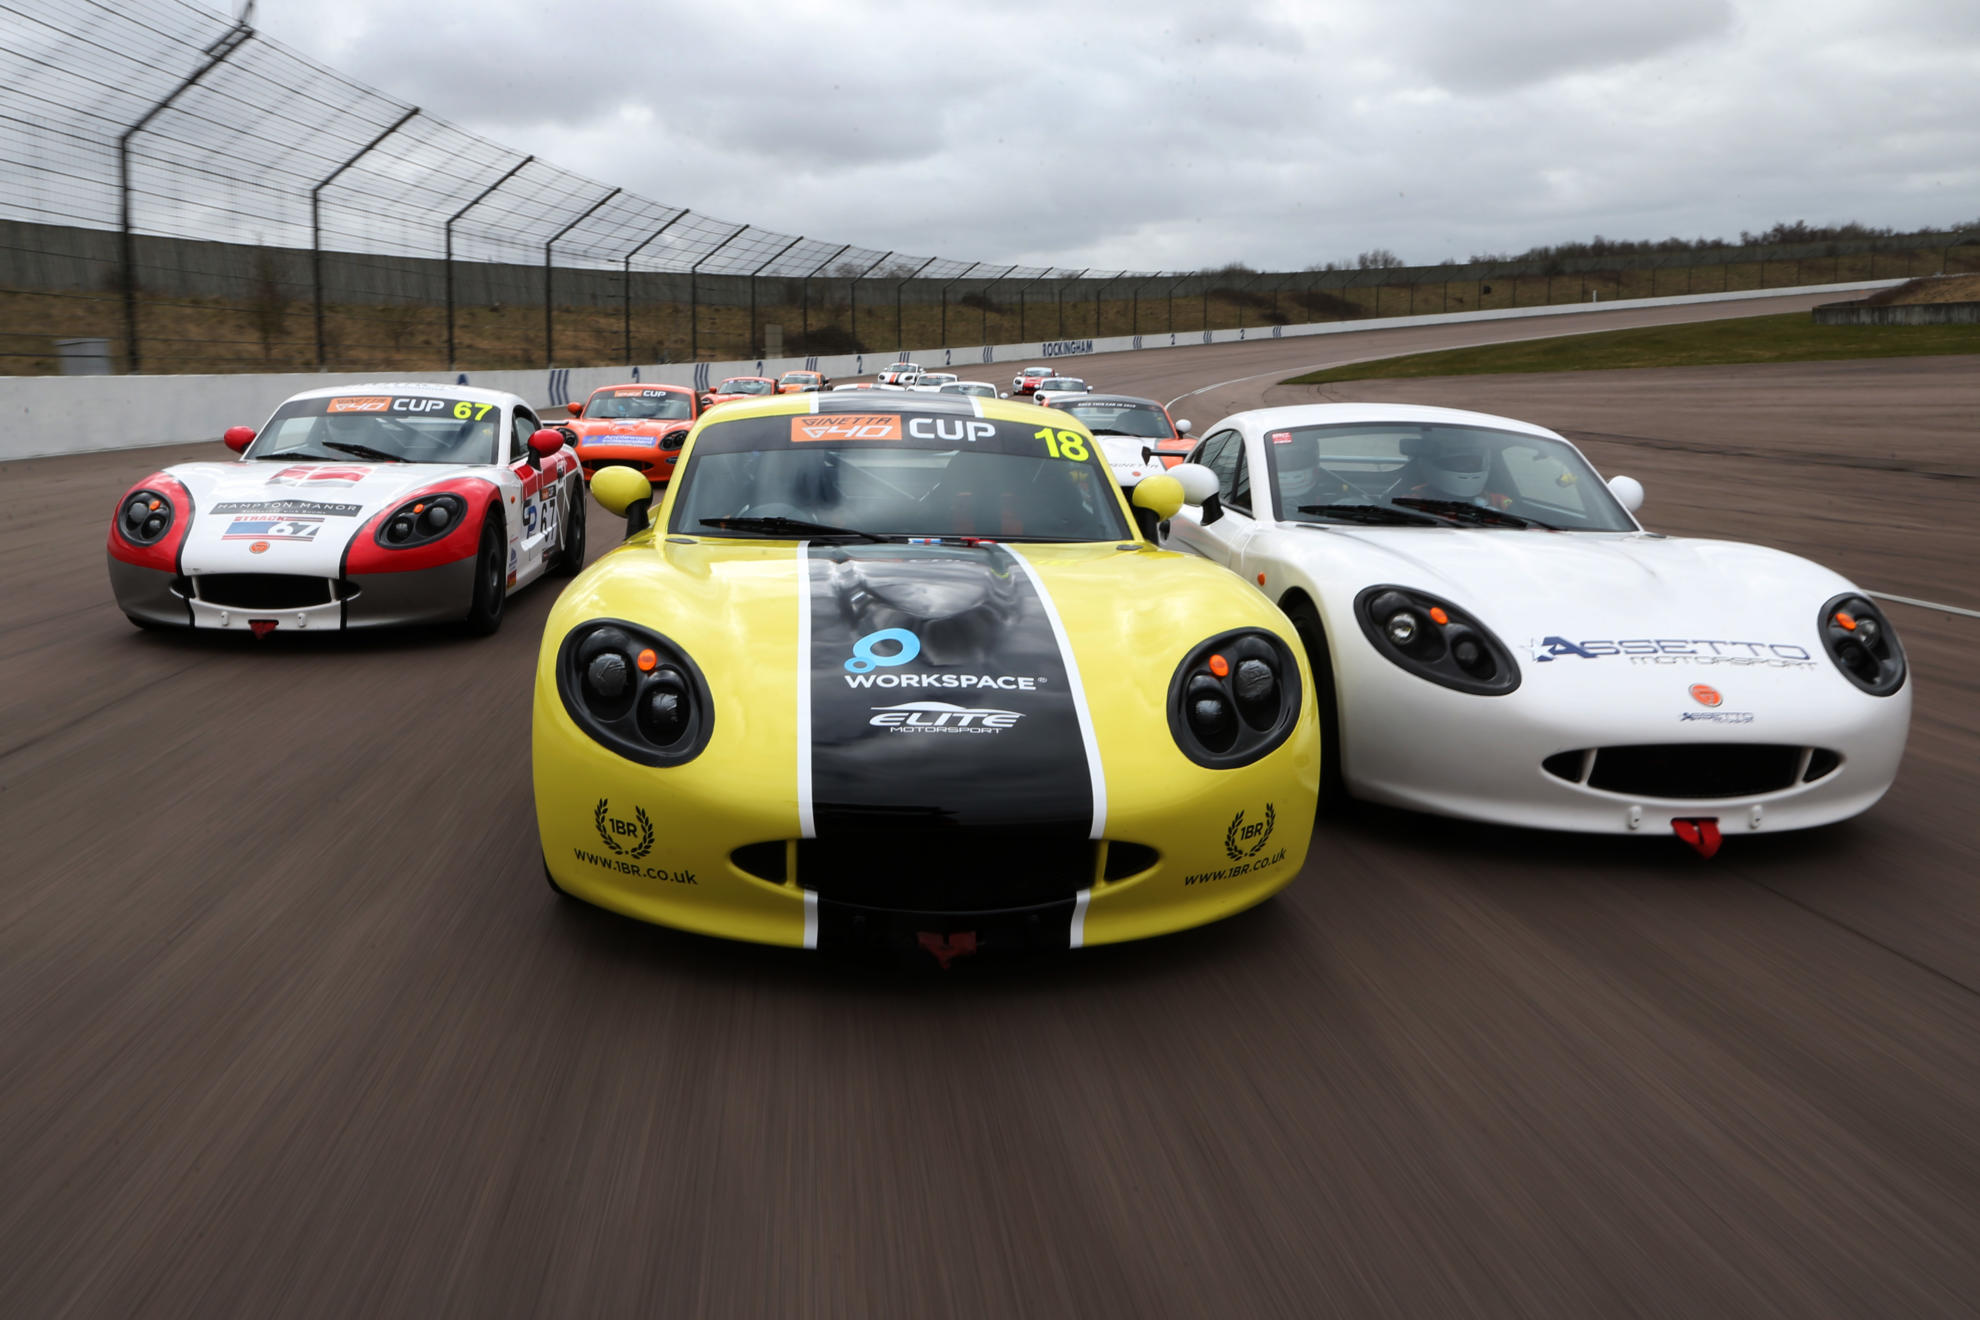 Preview: A New Chapter For The Ginetta G40 Cup | Ginetta